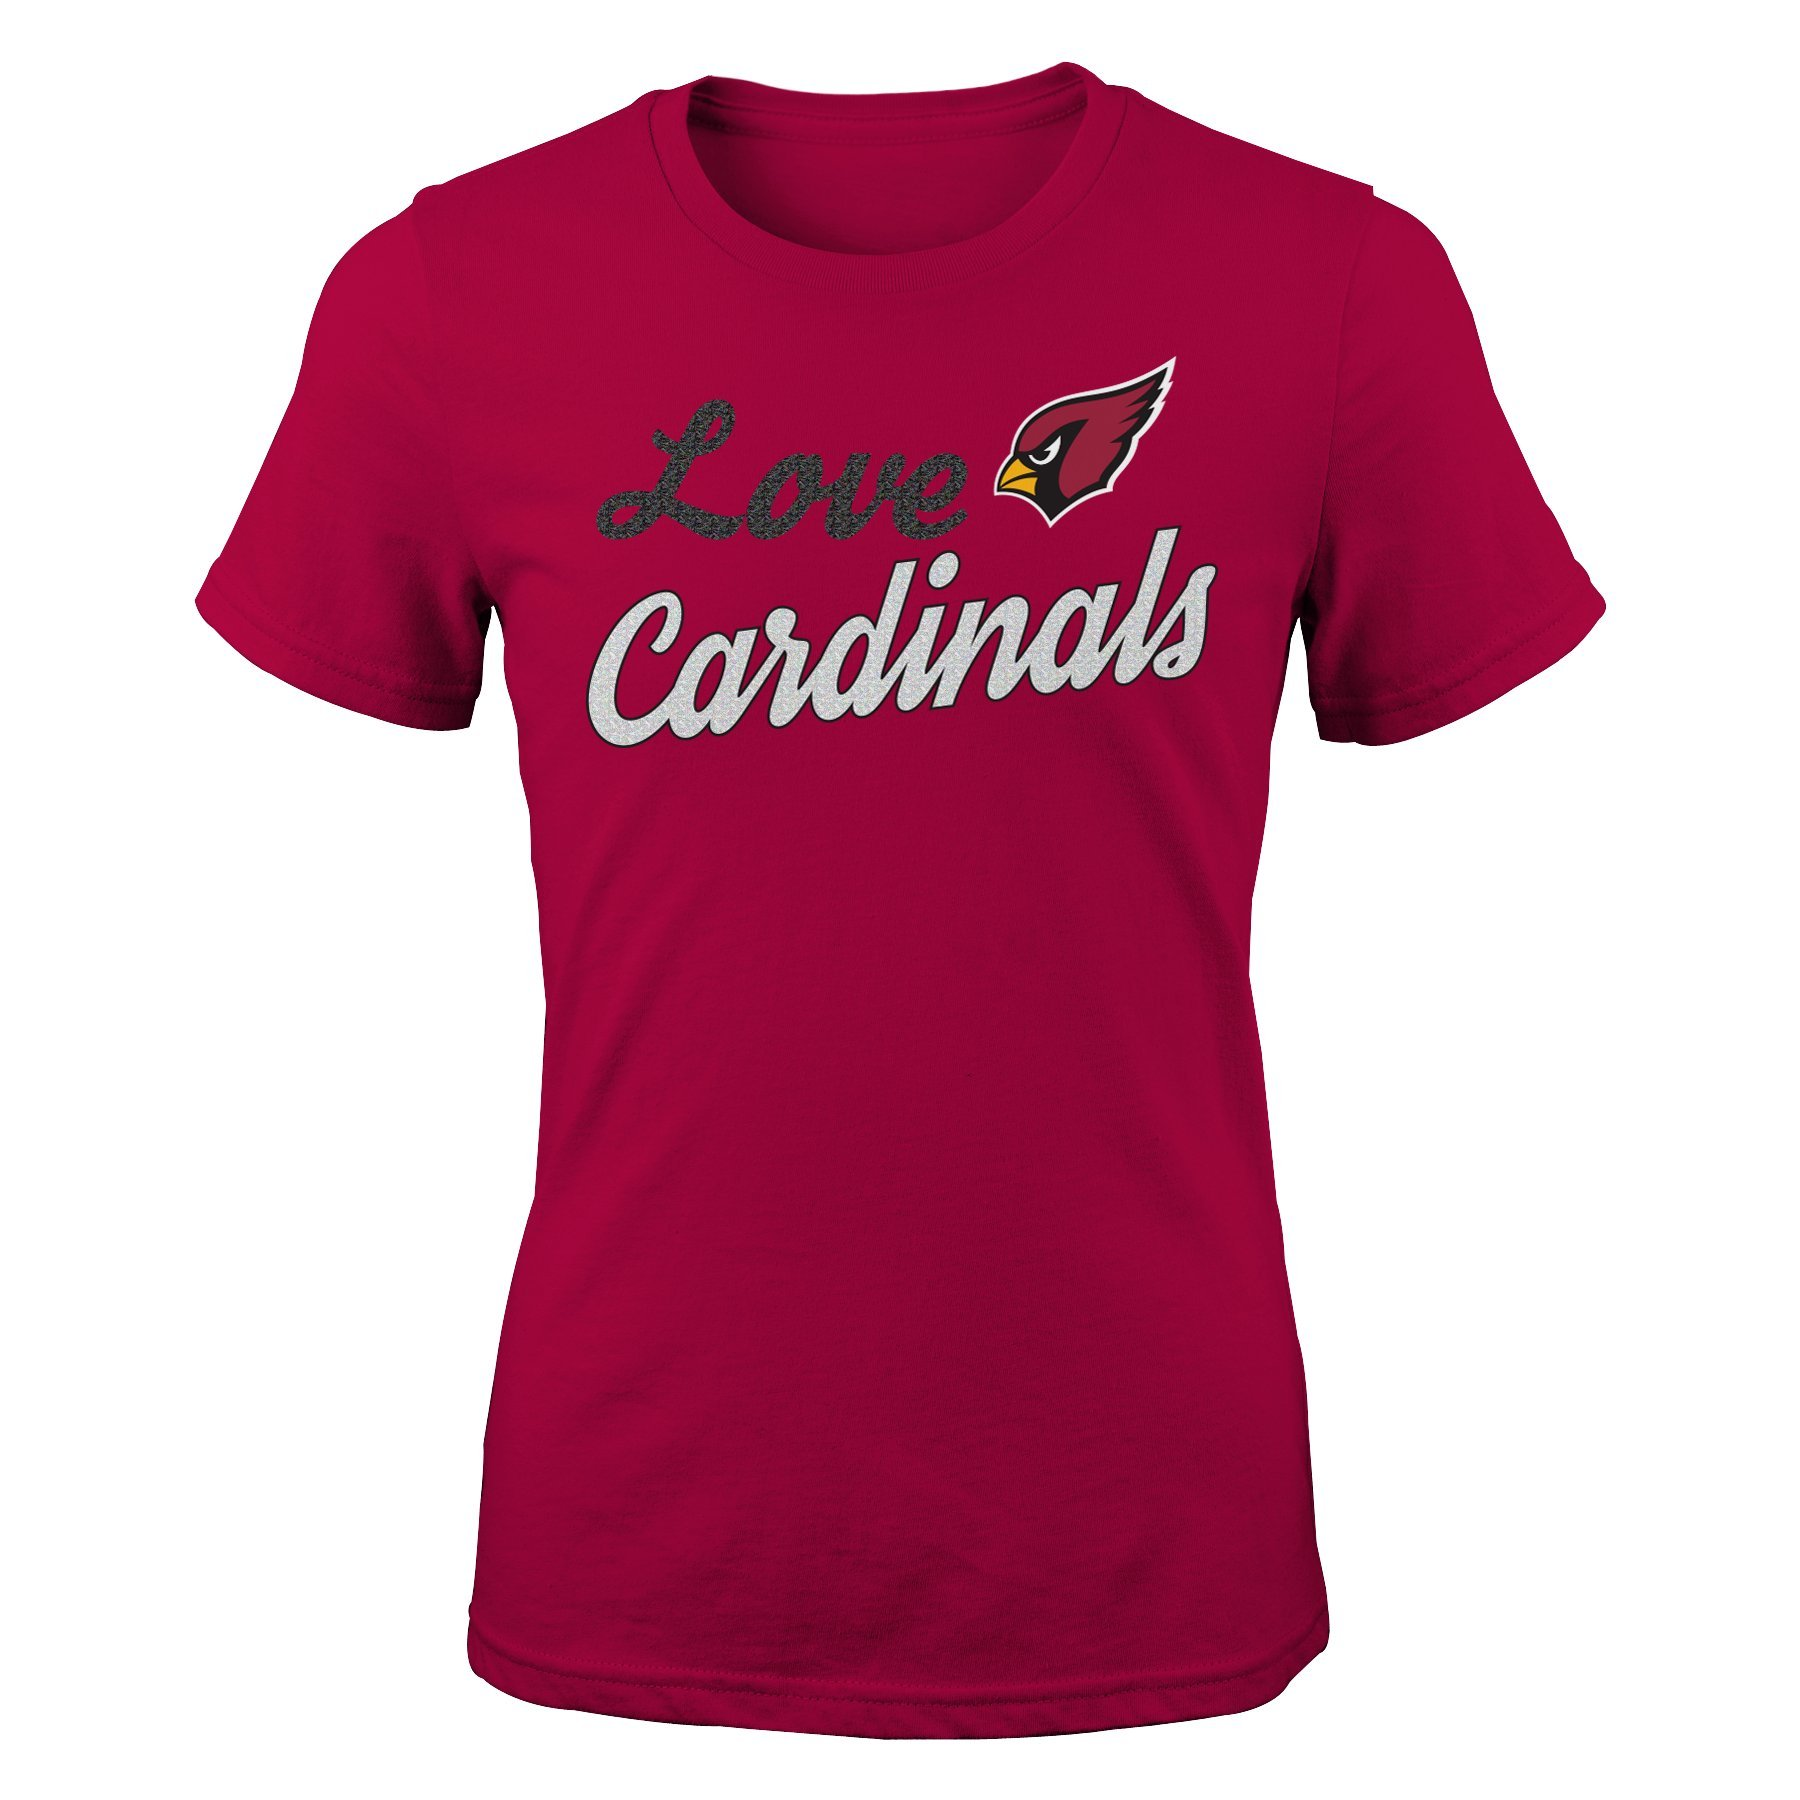 NFL Girls 7-16'' Live Love Team Short Sleeve Tee-Cardinal-L(14), Arizona Cardinals by NFL by Outerstuff (Image #2)